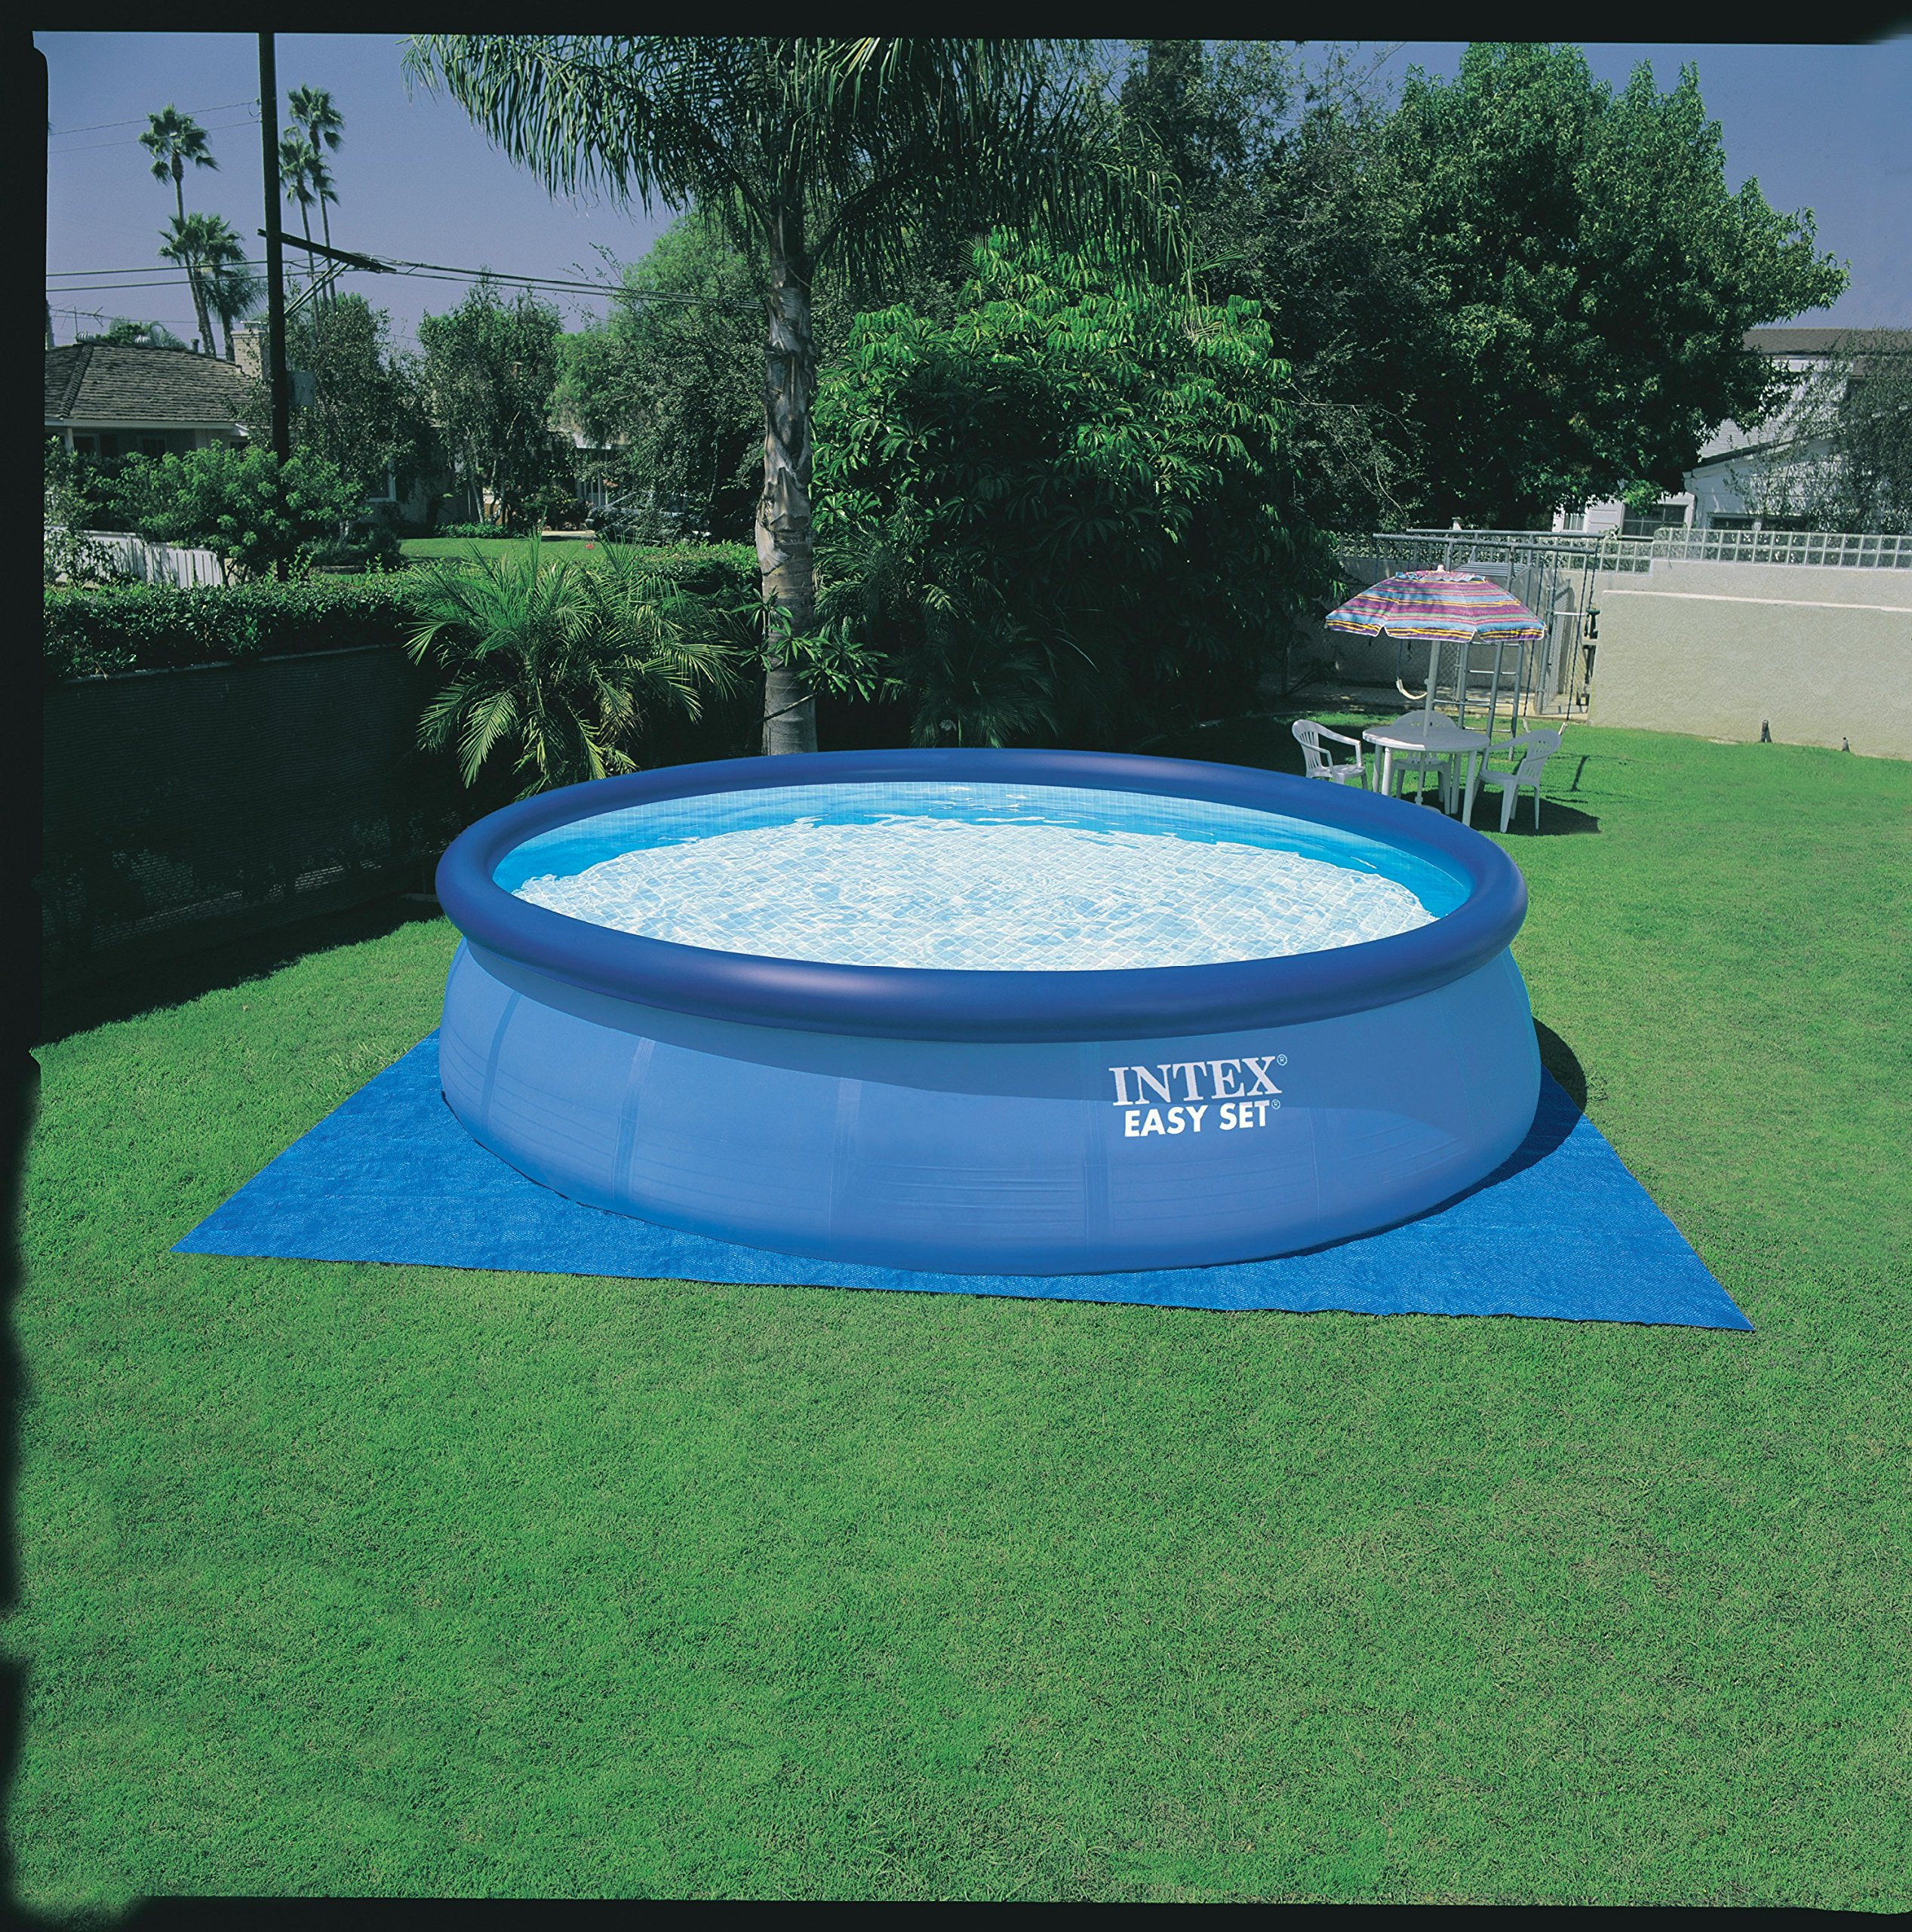 Intex 15ft X 48in Easy Set Pool Set with Filter Pump, Ladder, Ground Cloth & Pool Cover by Intex (Image #3)